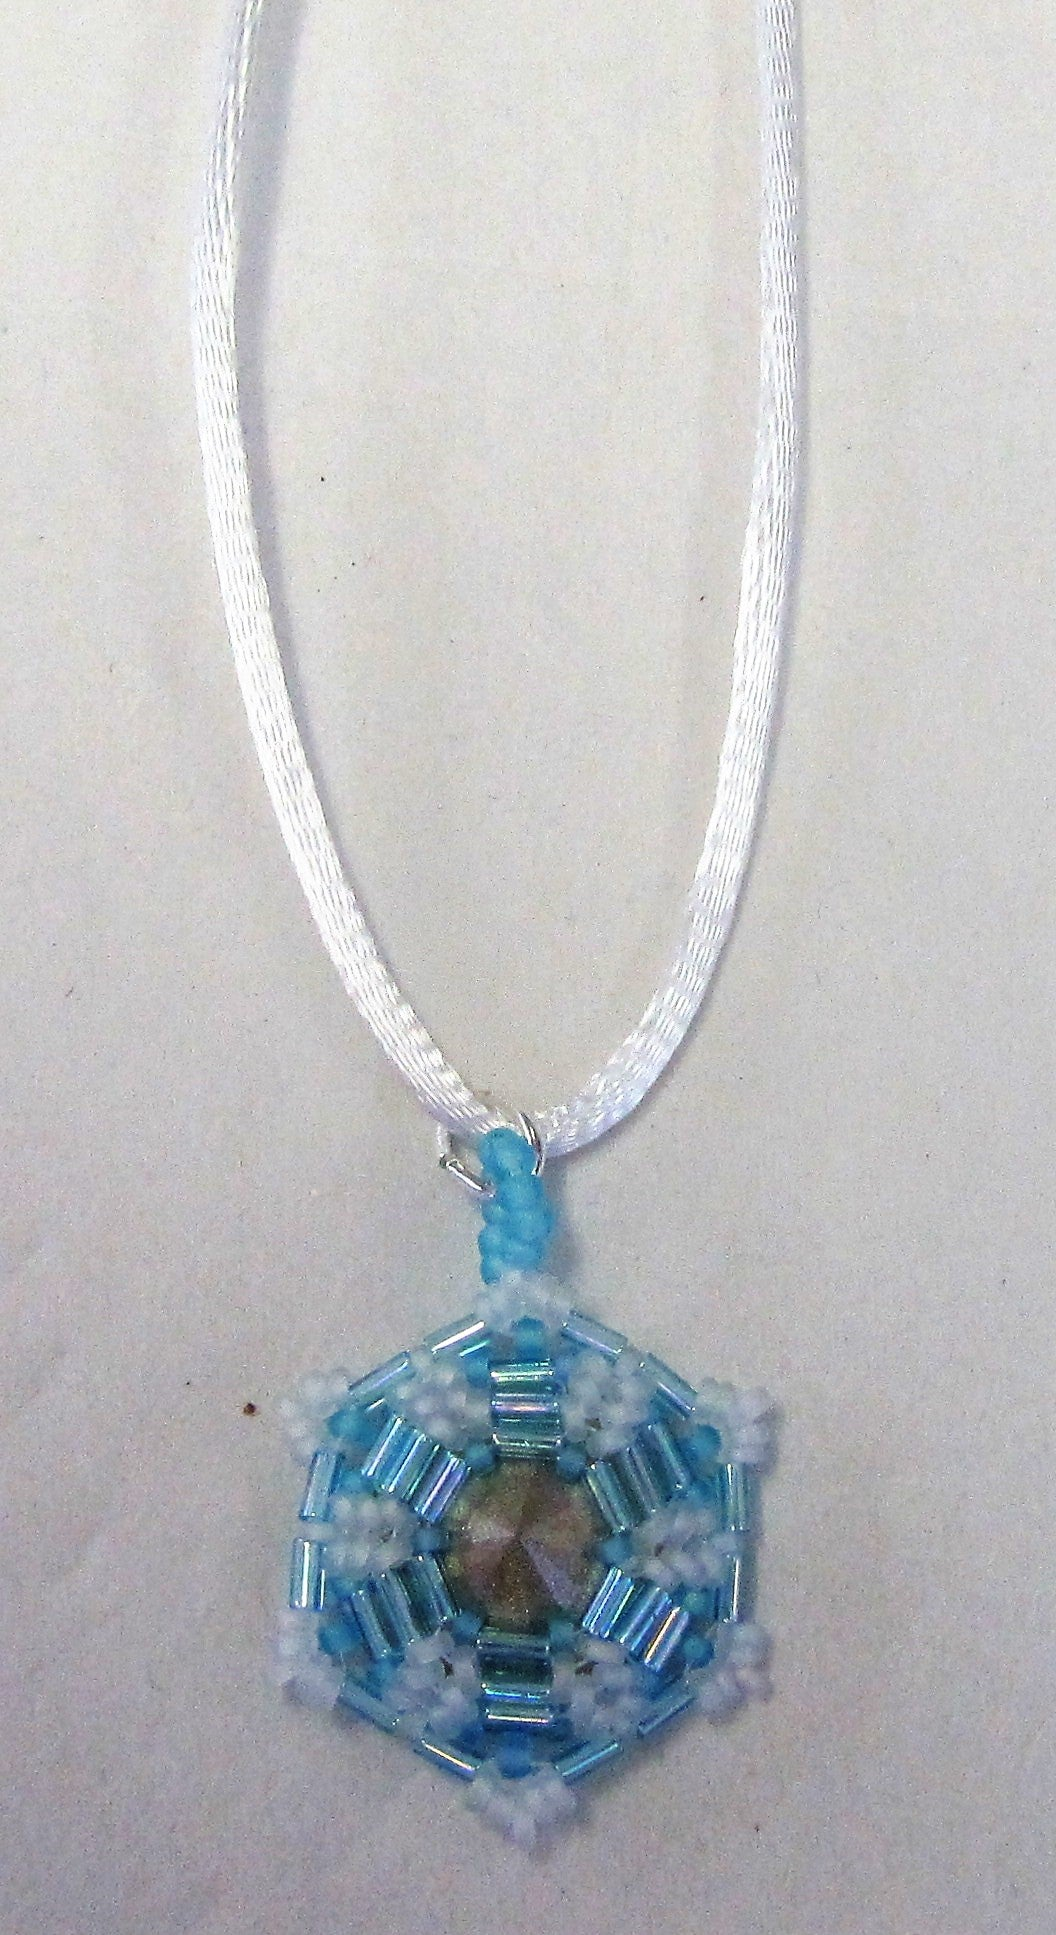 Handcrafted blue beaded pendant on white cord necklace